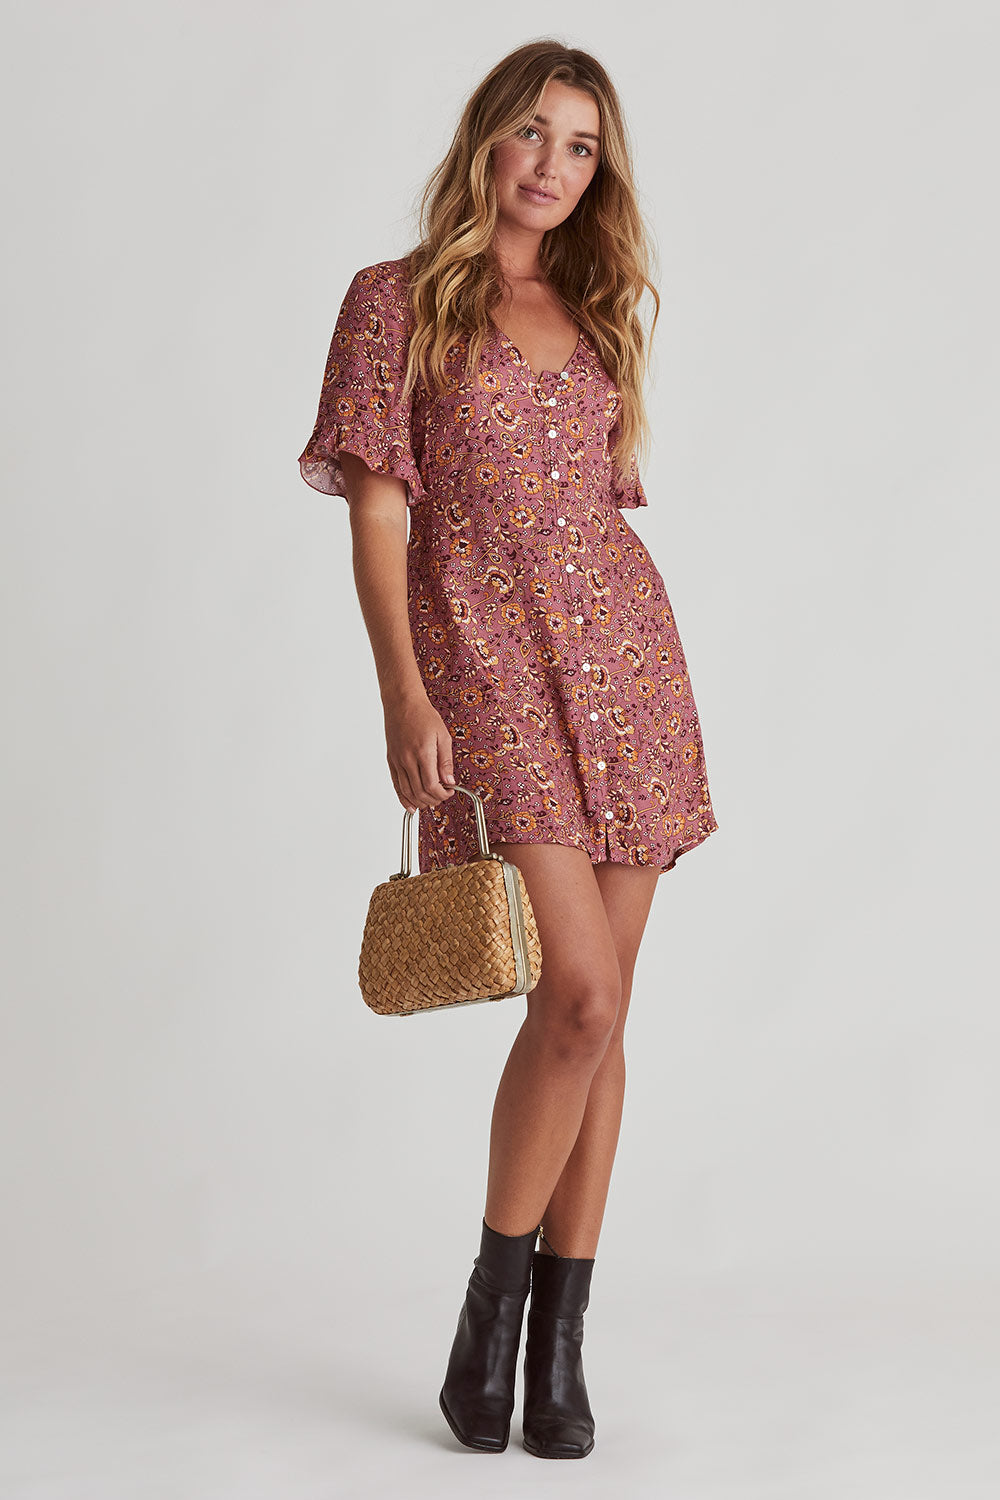 Esmee Mini Dress in Maple